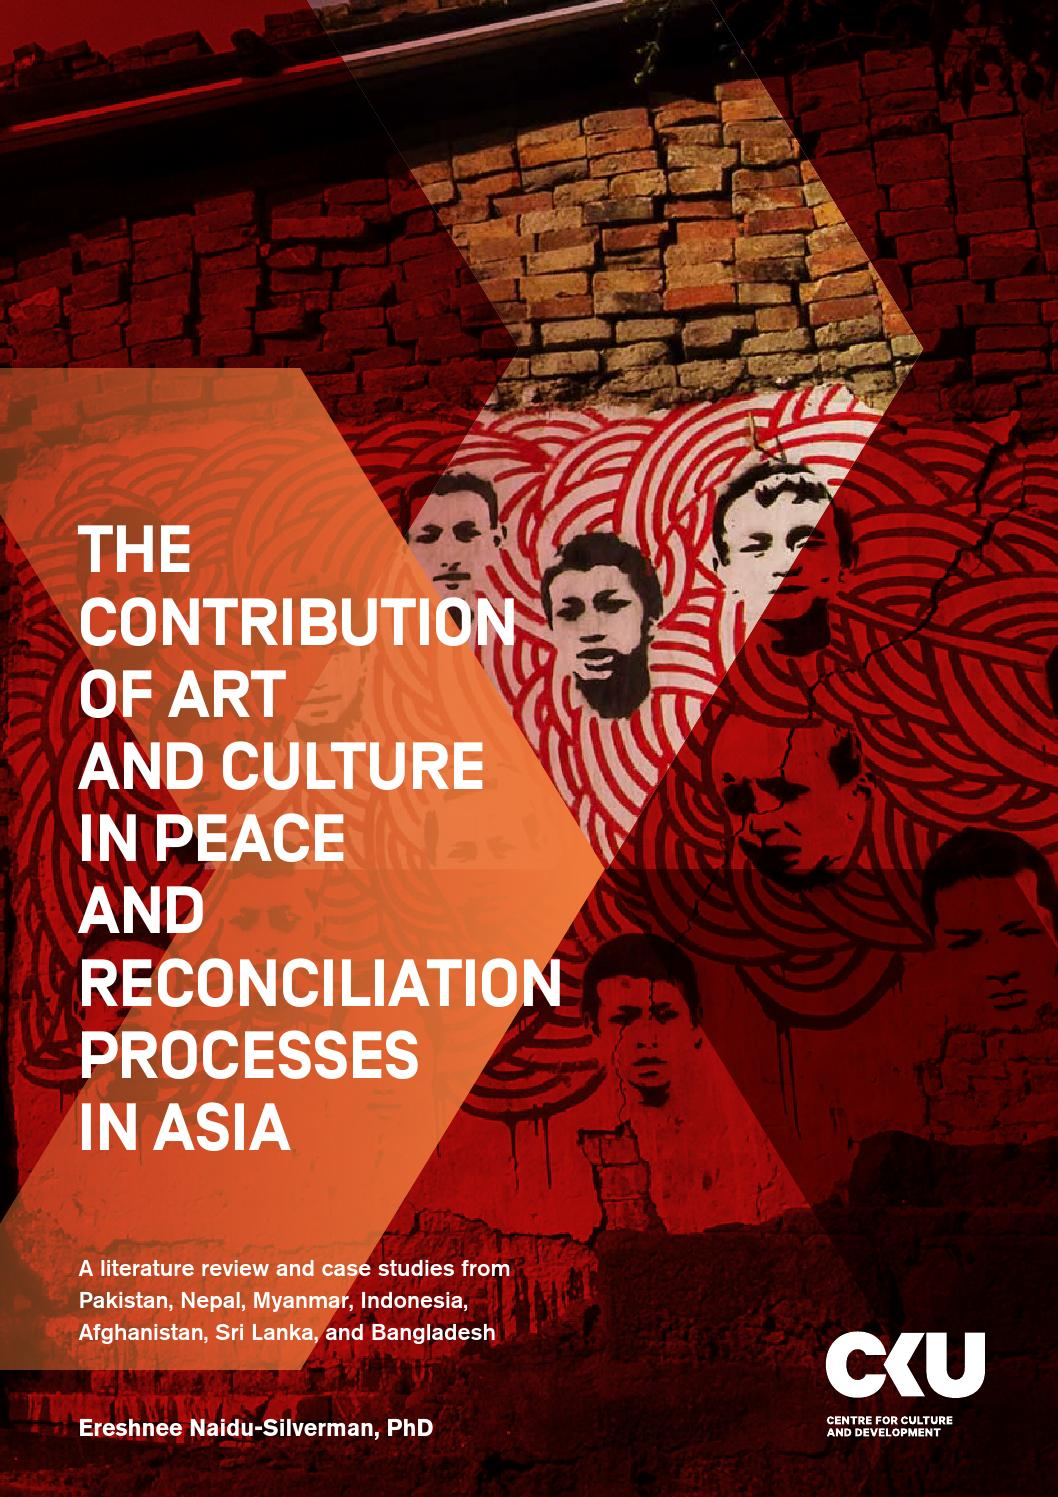 The Contribution of Art and Culture in Peace and Reconciliation Processes by Centre for Culture